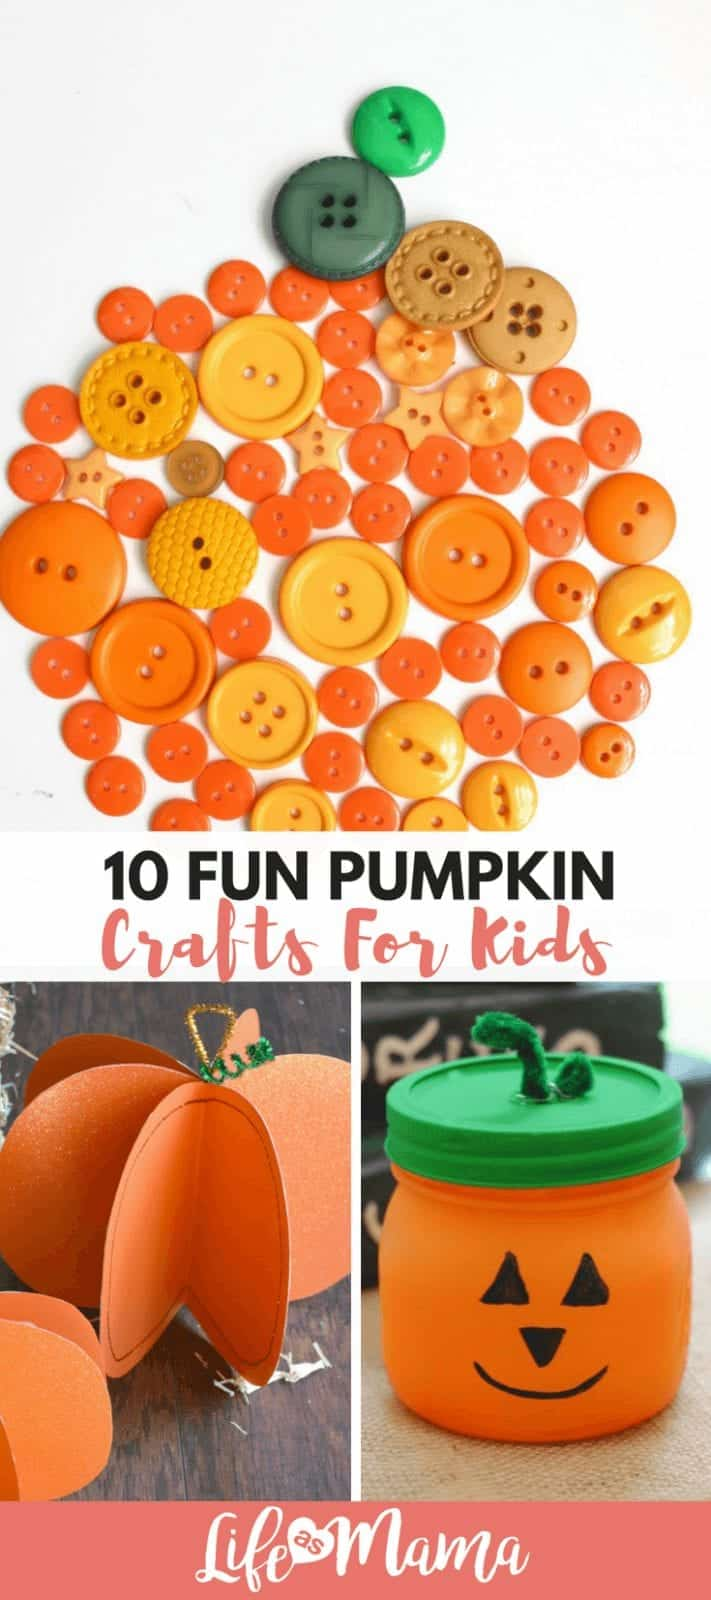 10 Fun Pumpkin Crafts for Kids